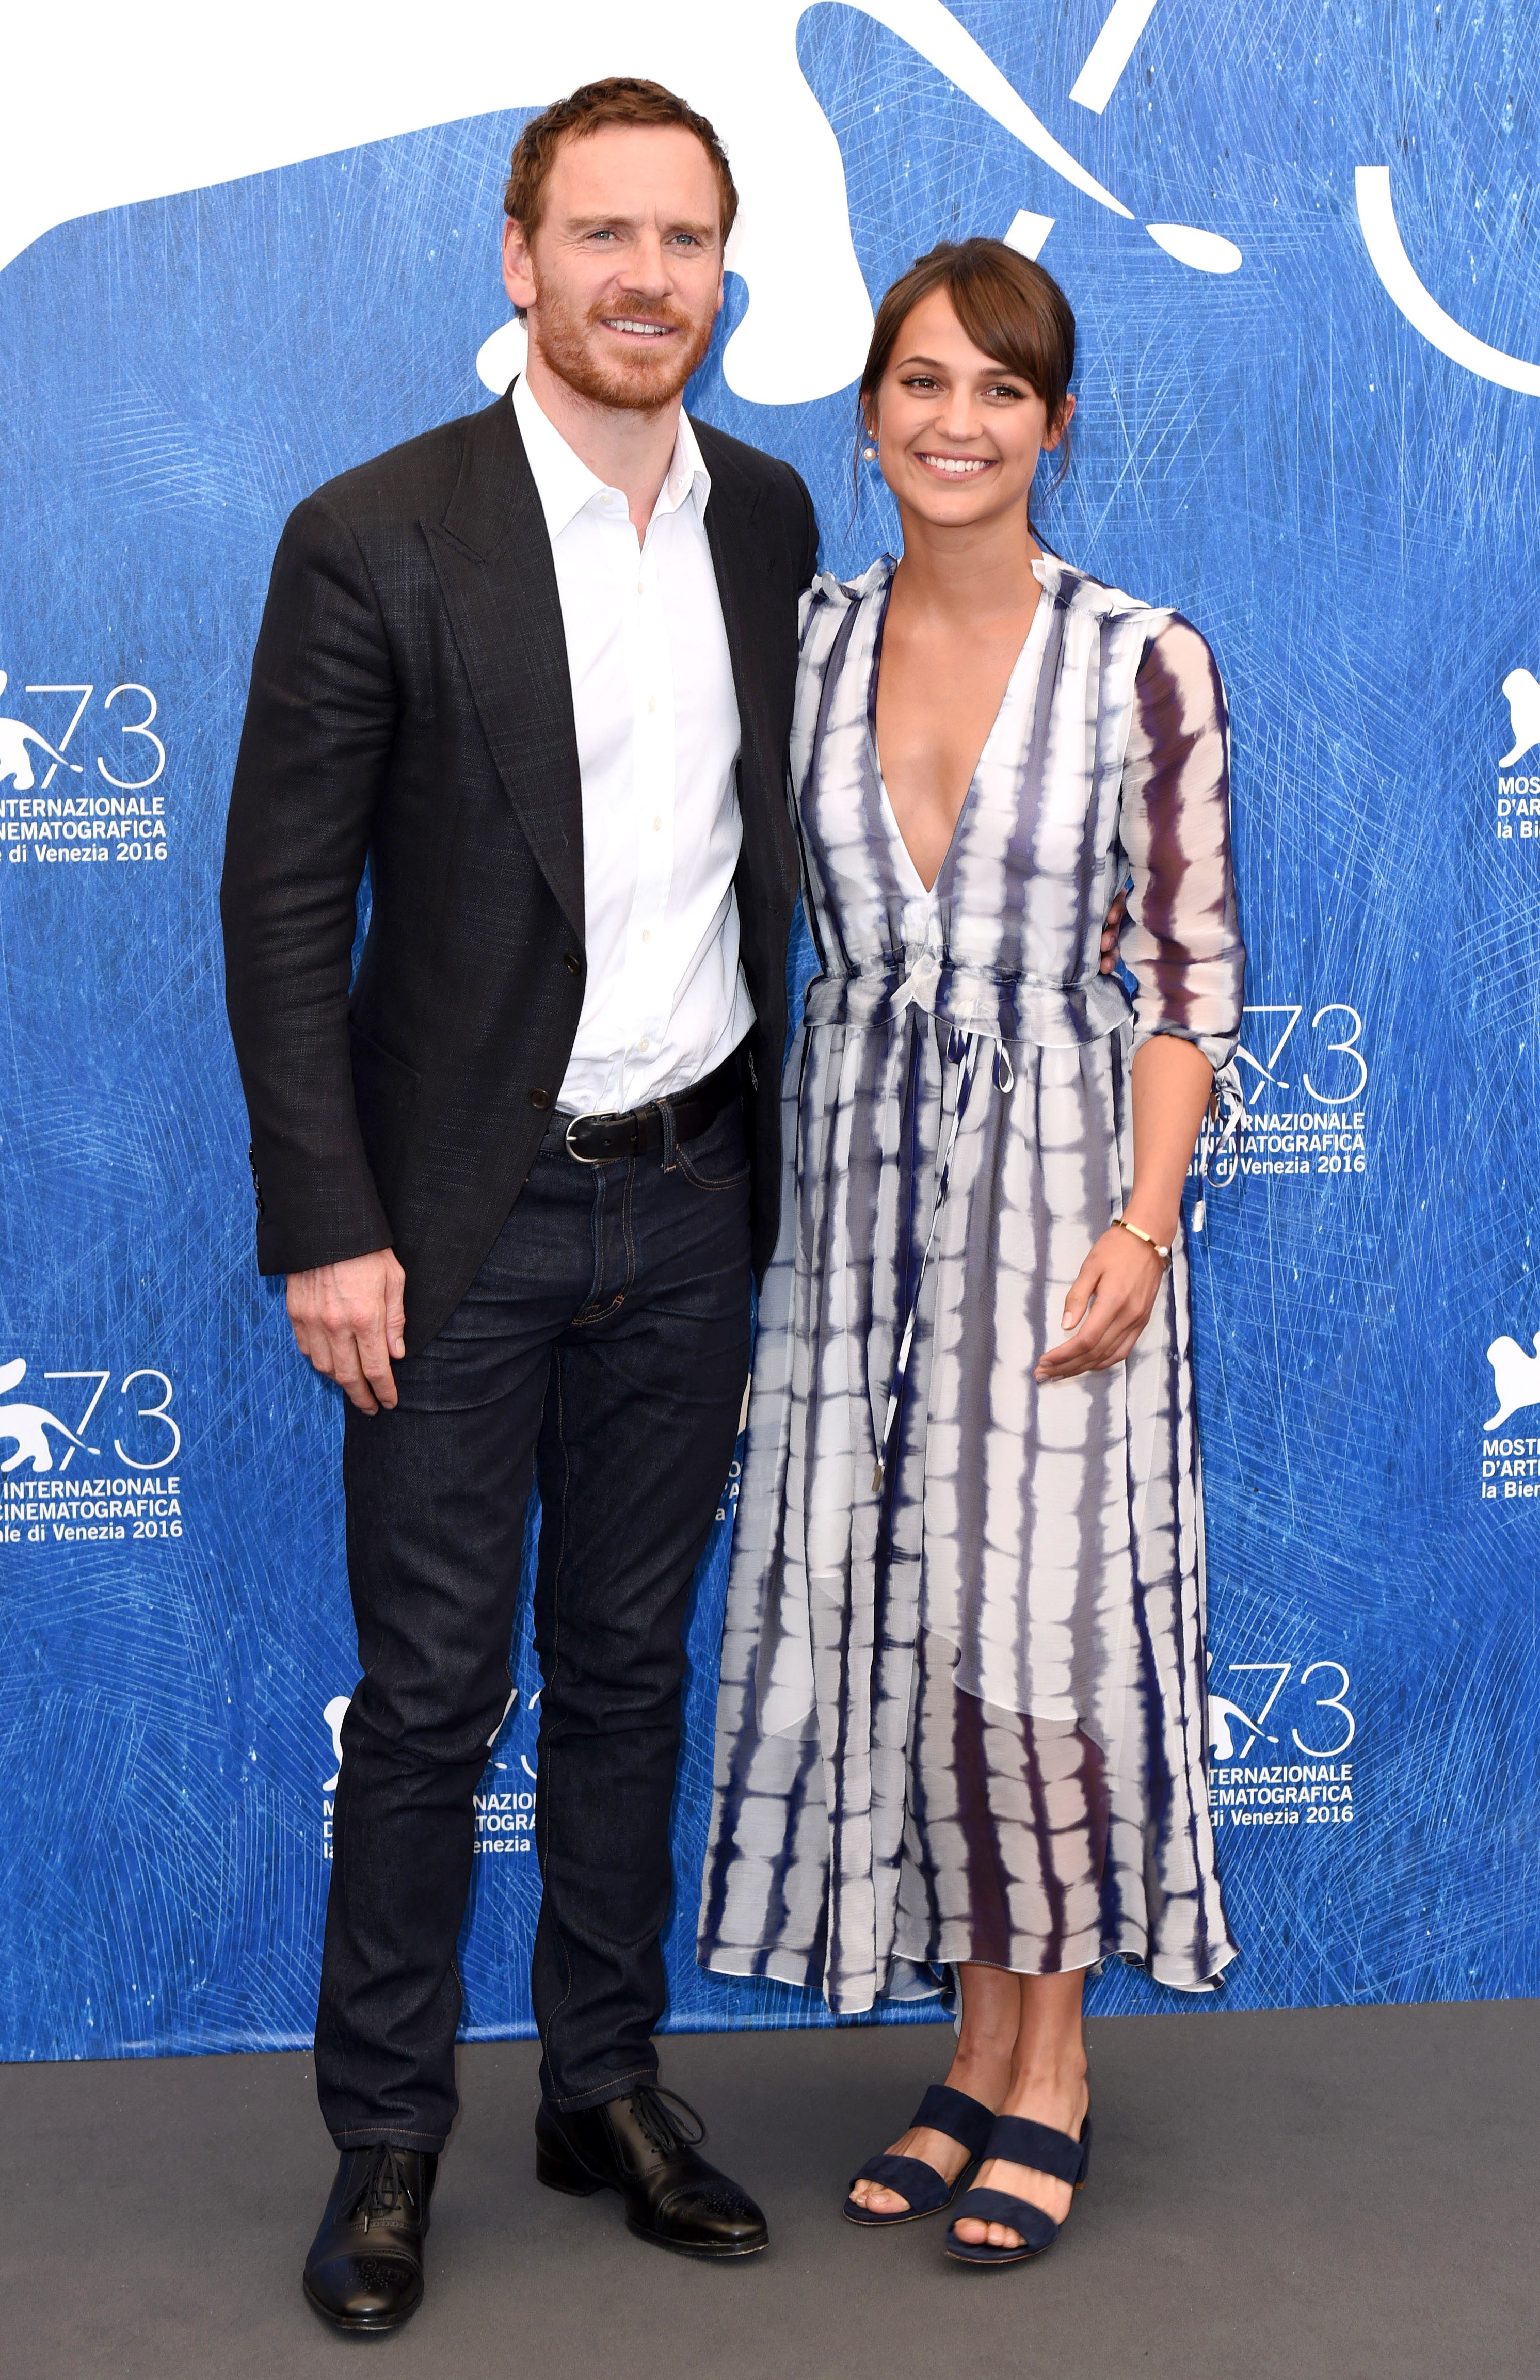 Michael Fassbender and Alicia Vikander make it red carpet official